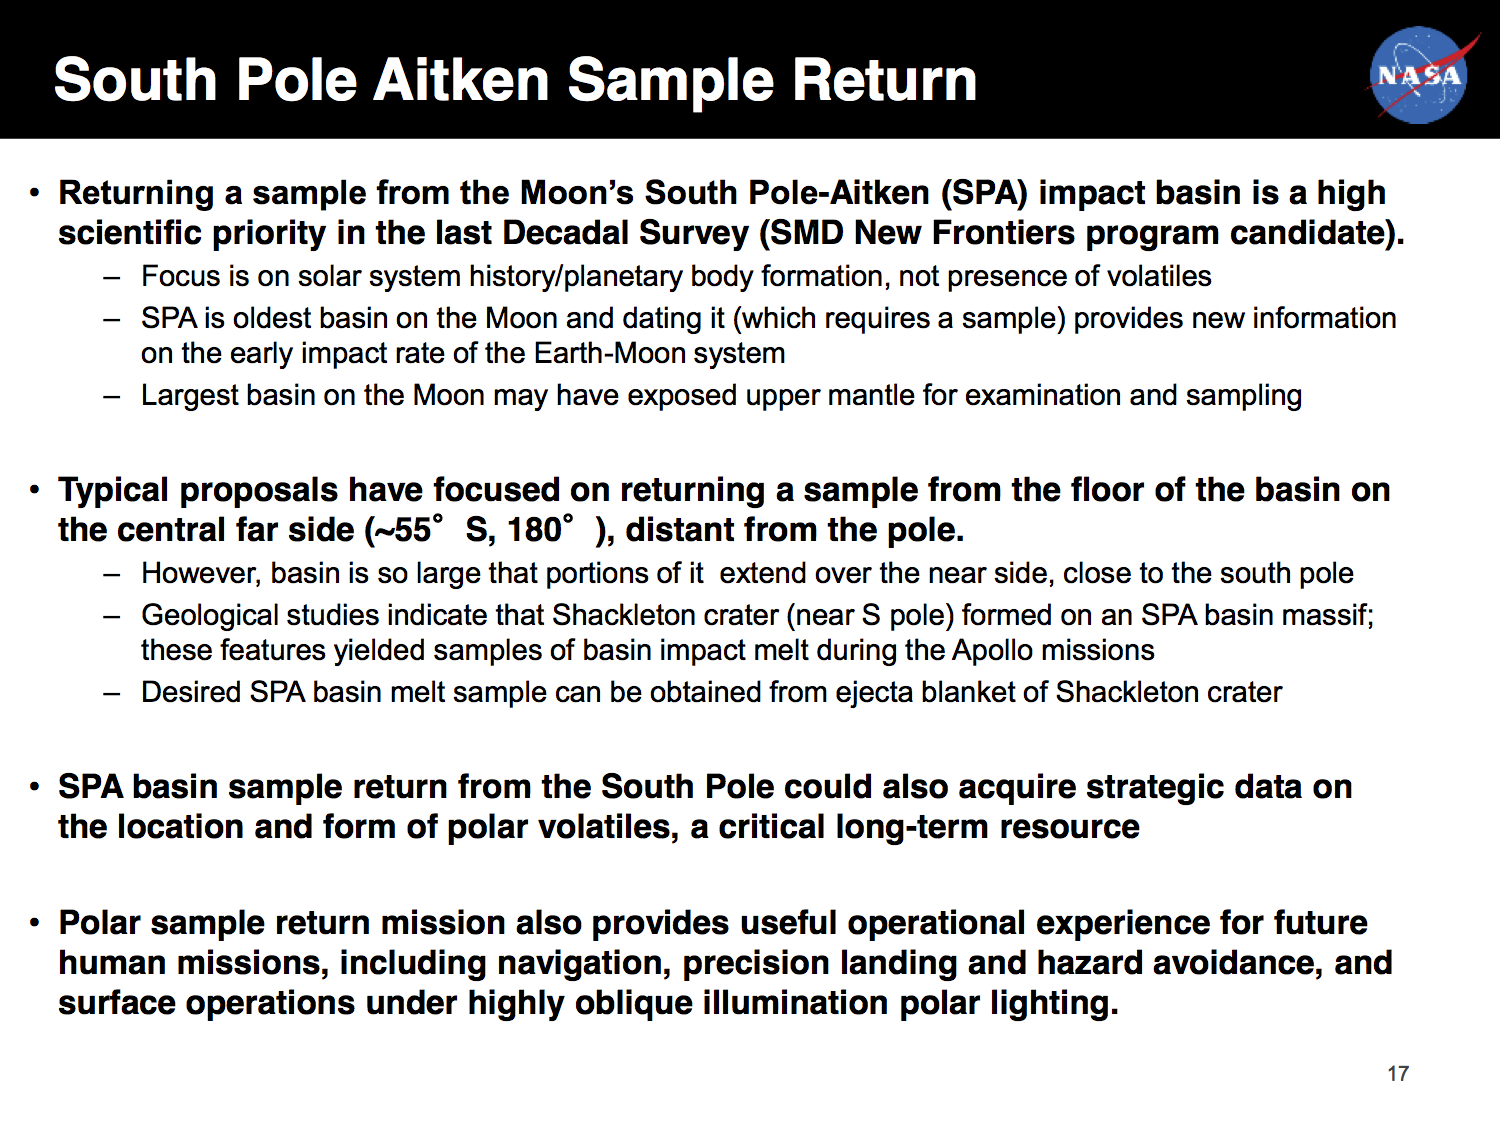 Another of NASA's slides sent to the Trump transition team.